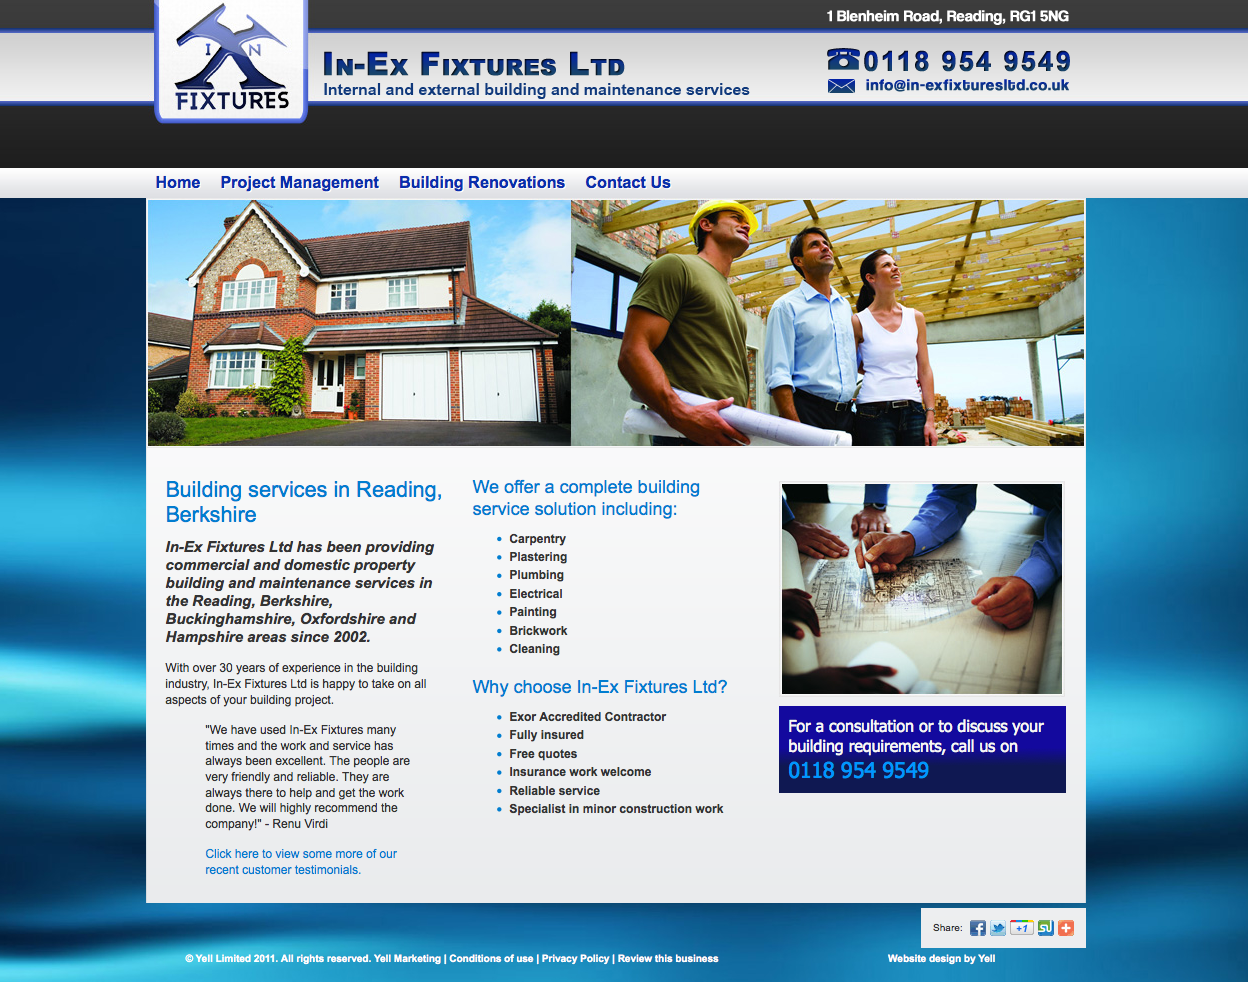 Internal and External Building Services